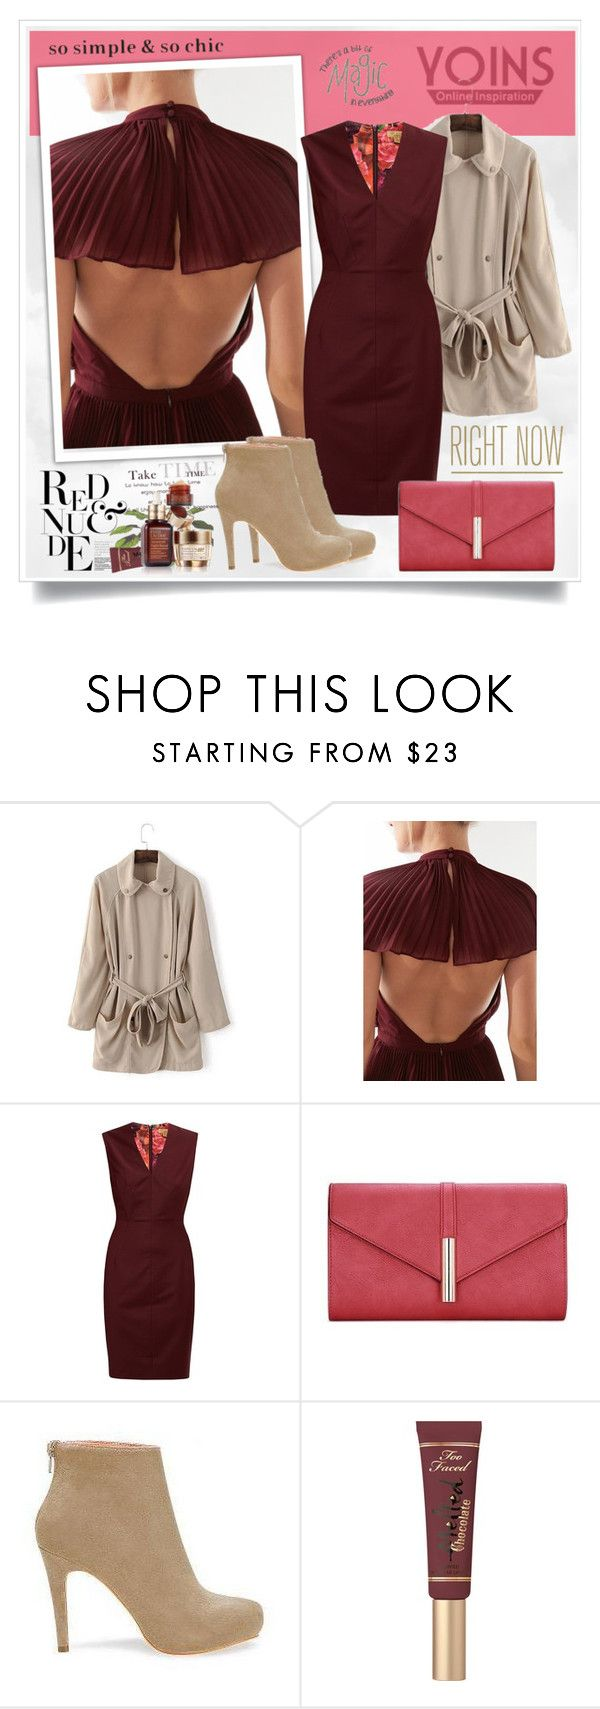 """Yoins200"" by sneky ❤ liked on Polyvore featuring Keepsake the Label, Ted Baker, Too Faced Cosmetics and Estée Lauder"